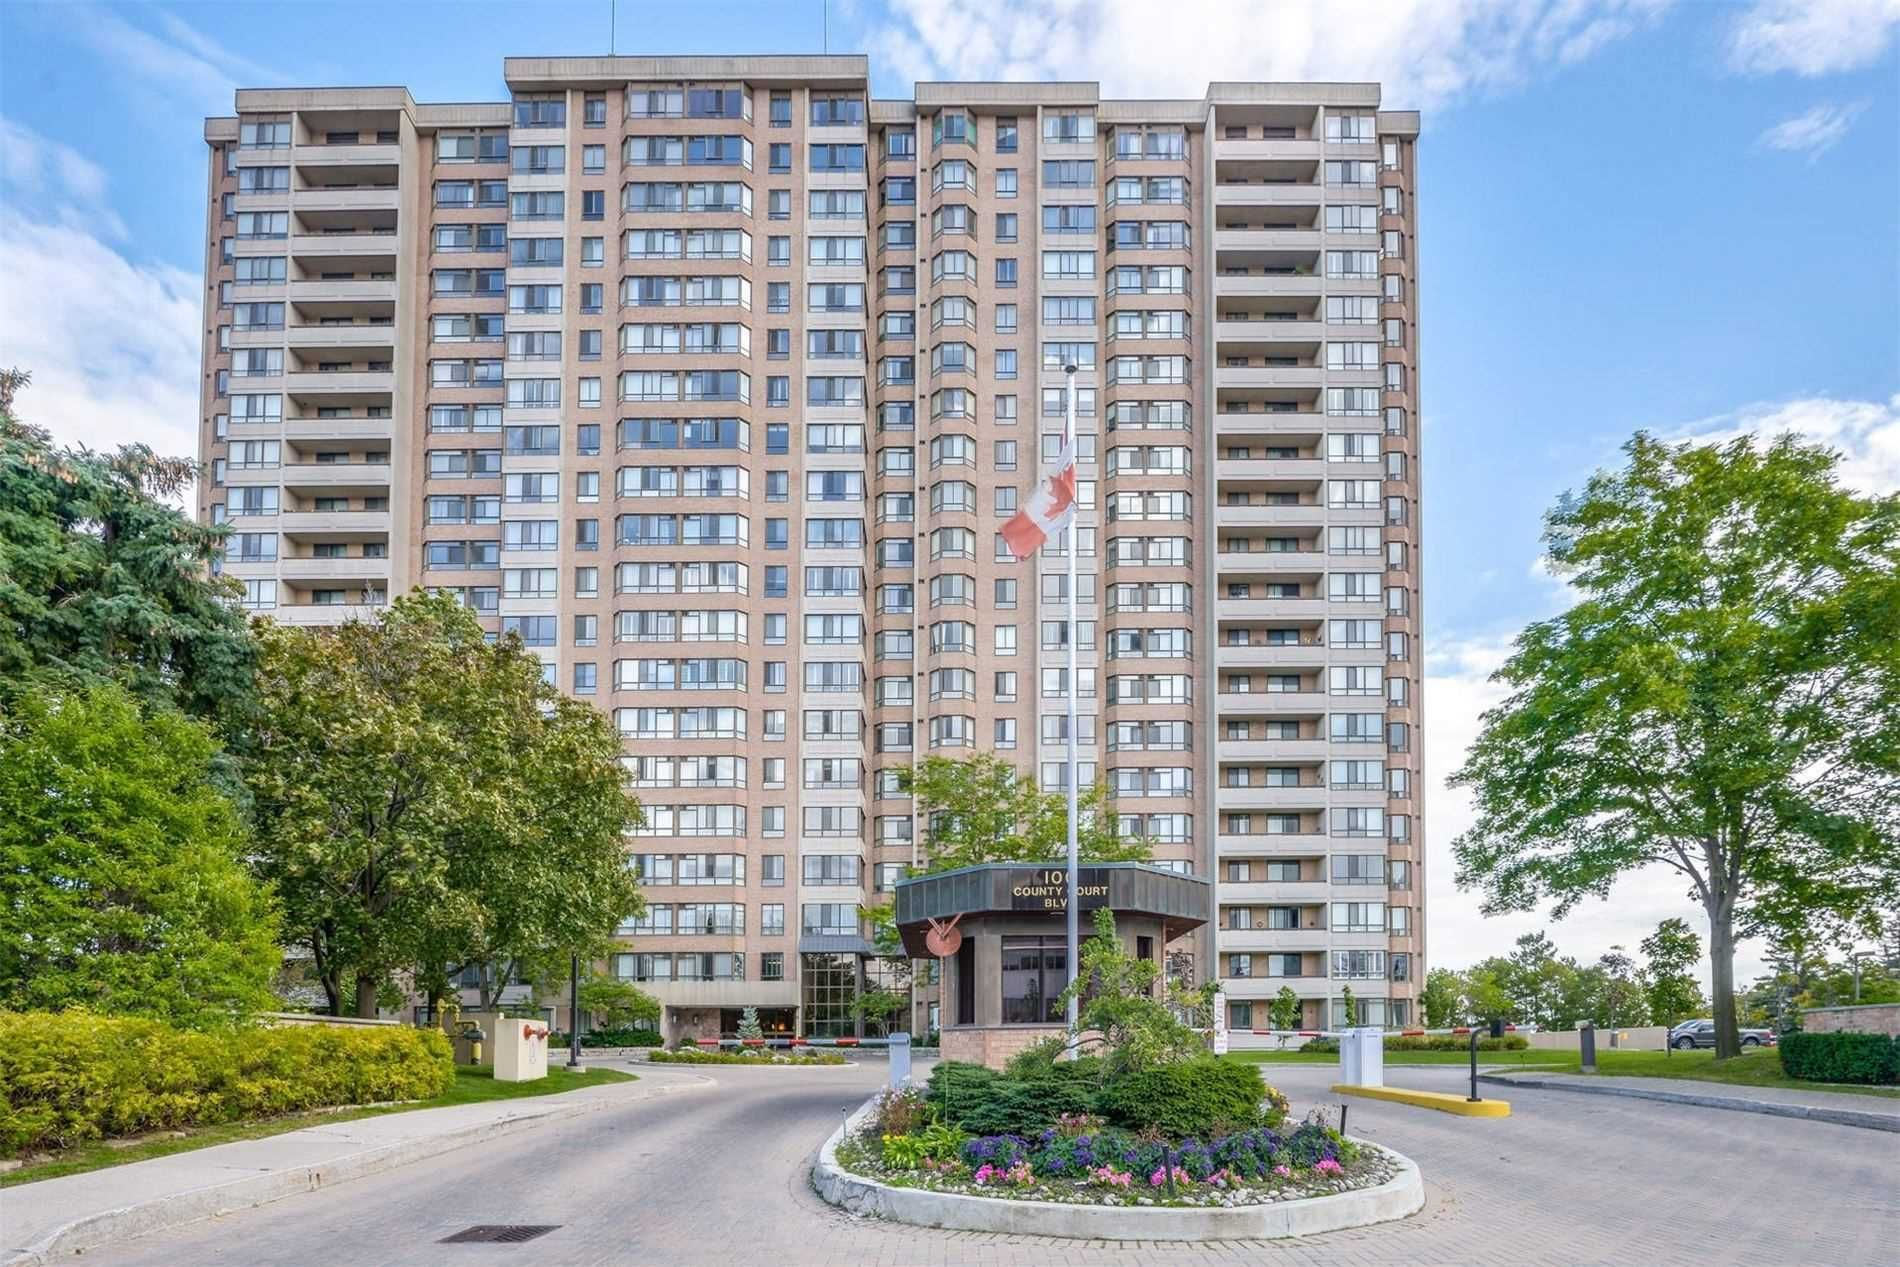 2003-100 County Court Boulevard for sale